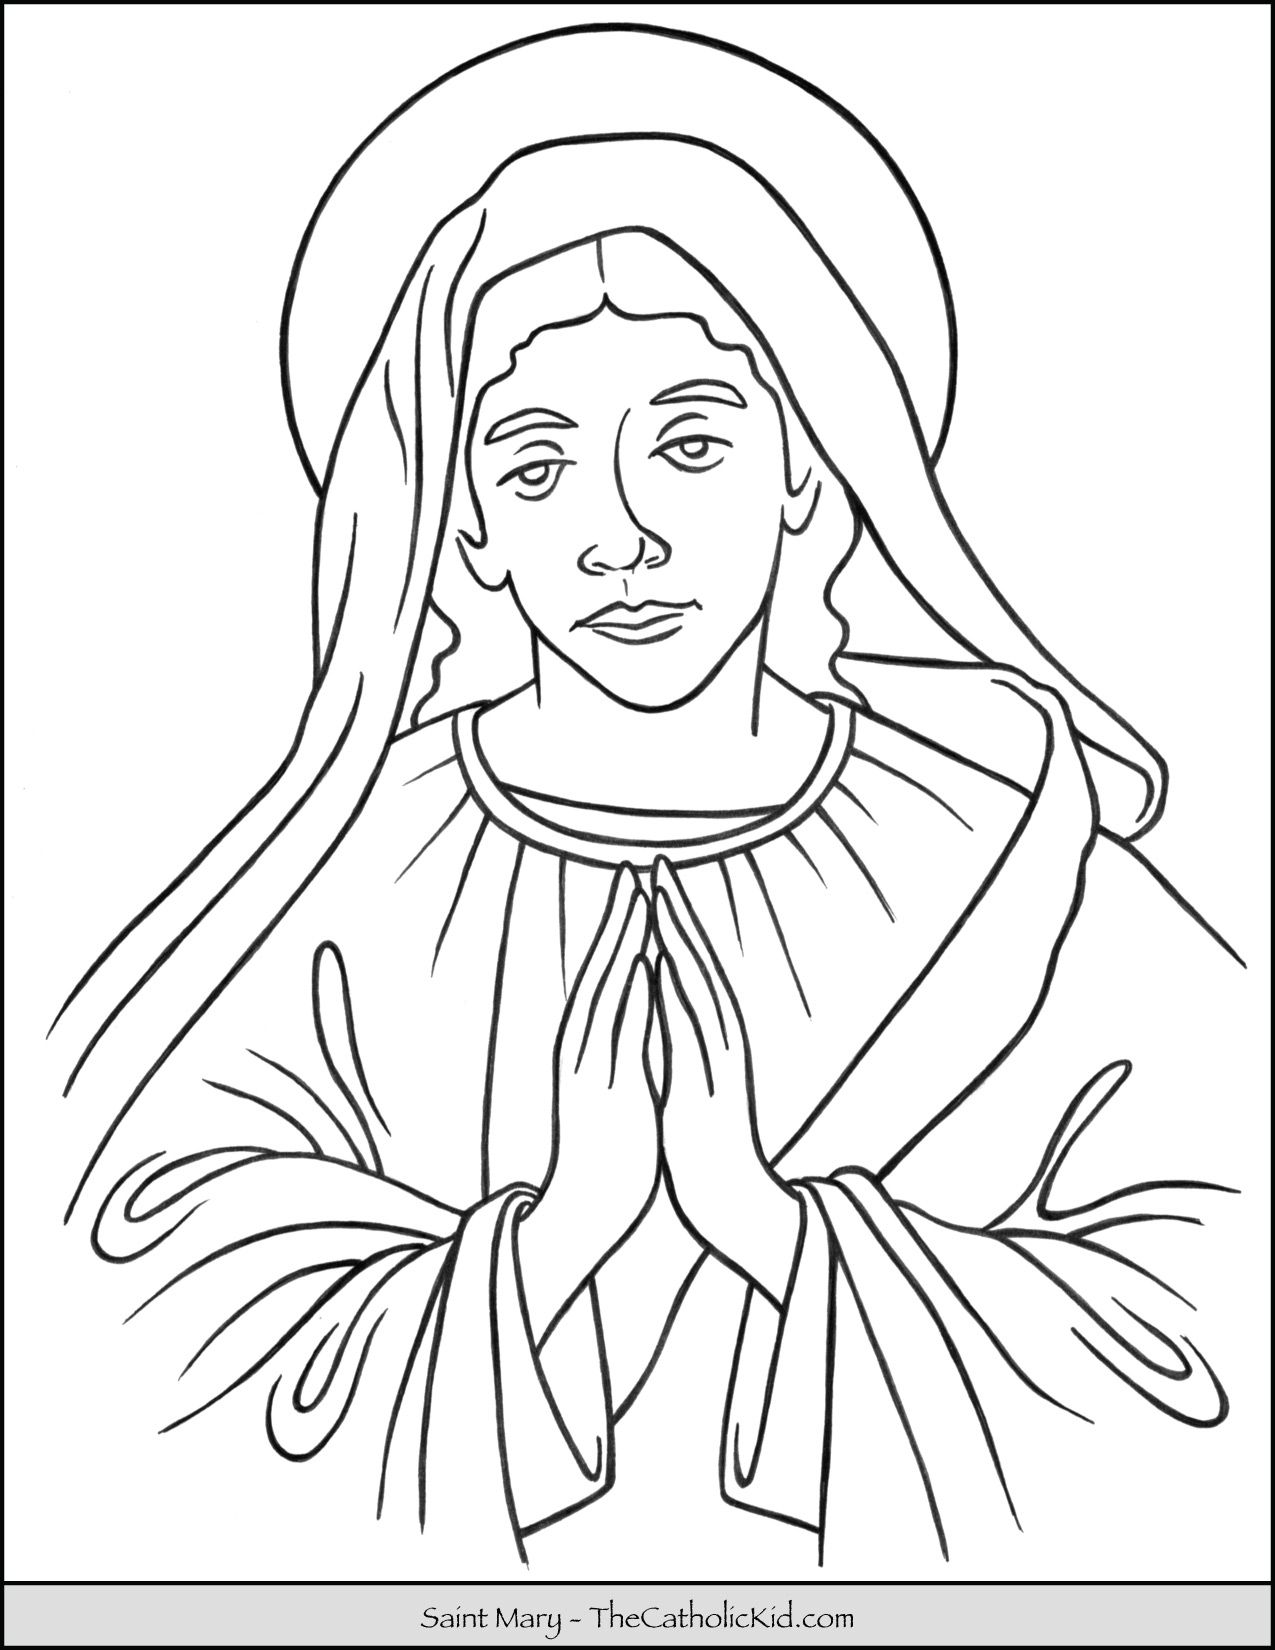 Saint Mary Coloring Page Coloring pages, Coloring pages